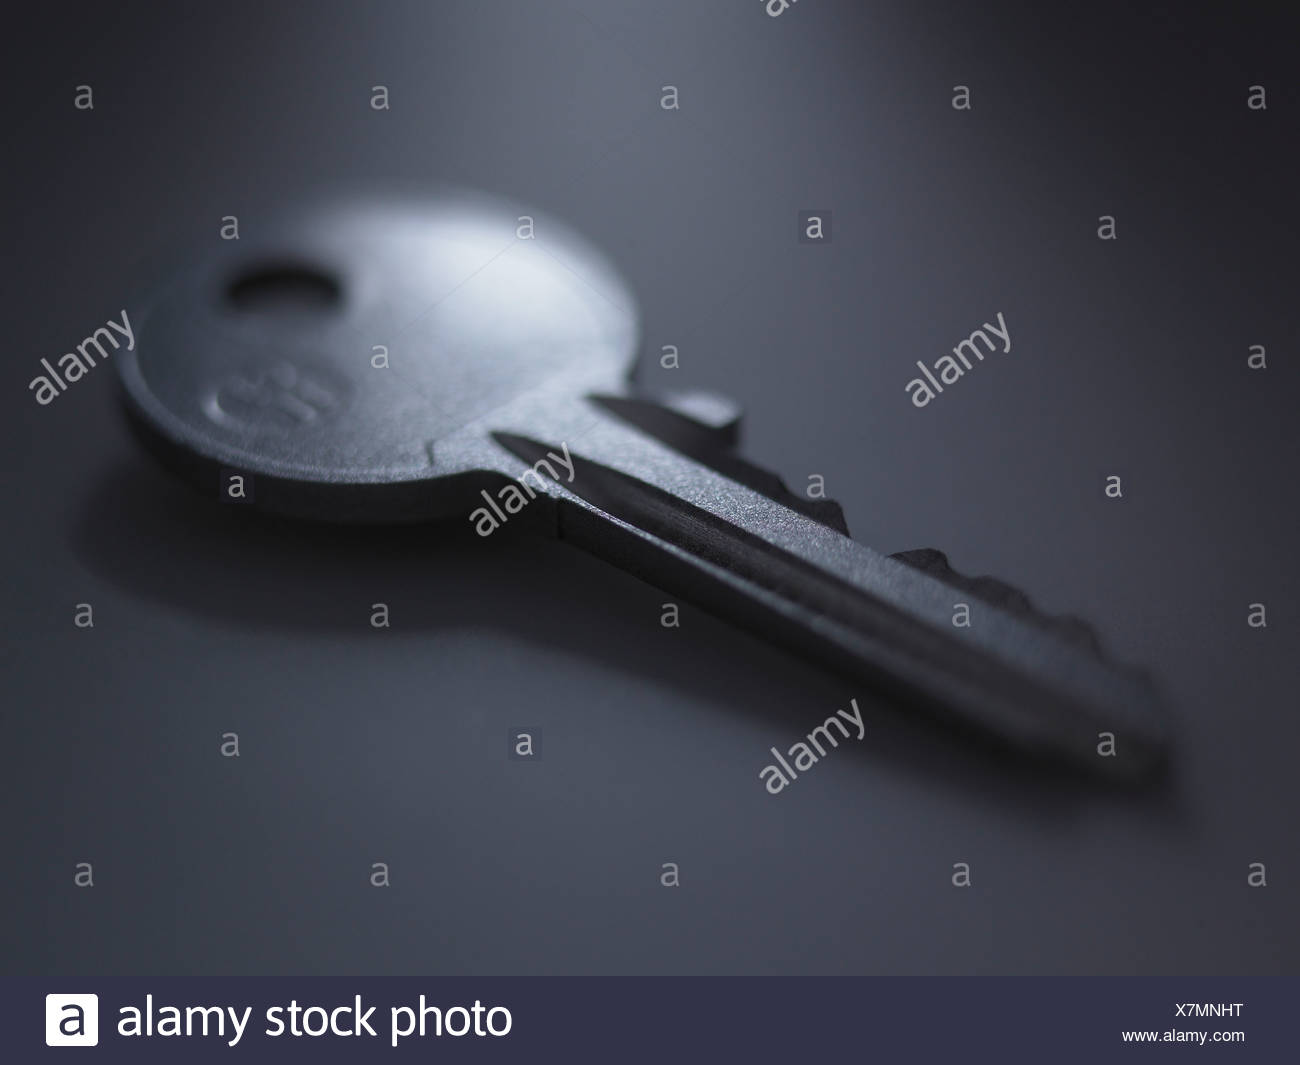 Close up of metal key - Stock Image